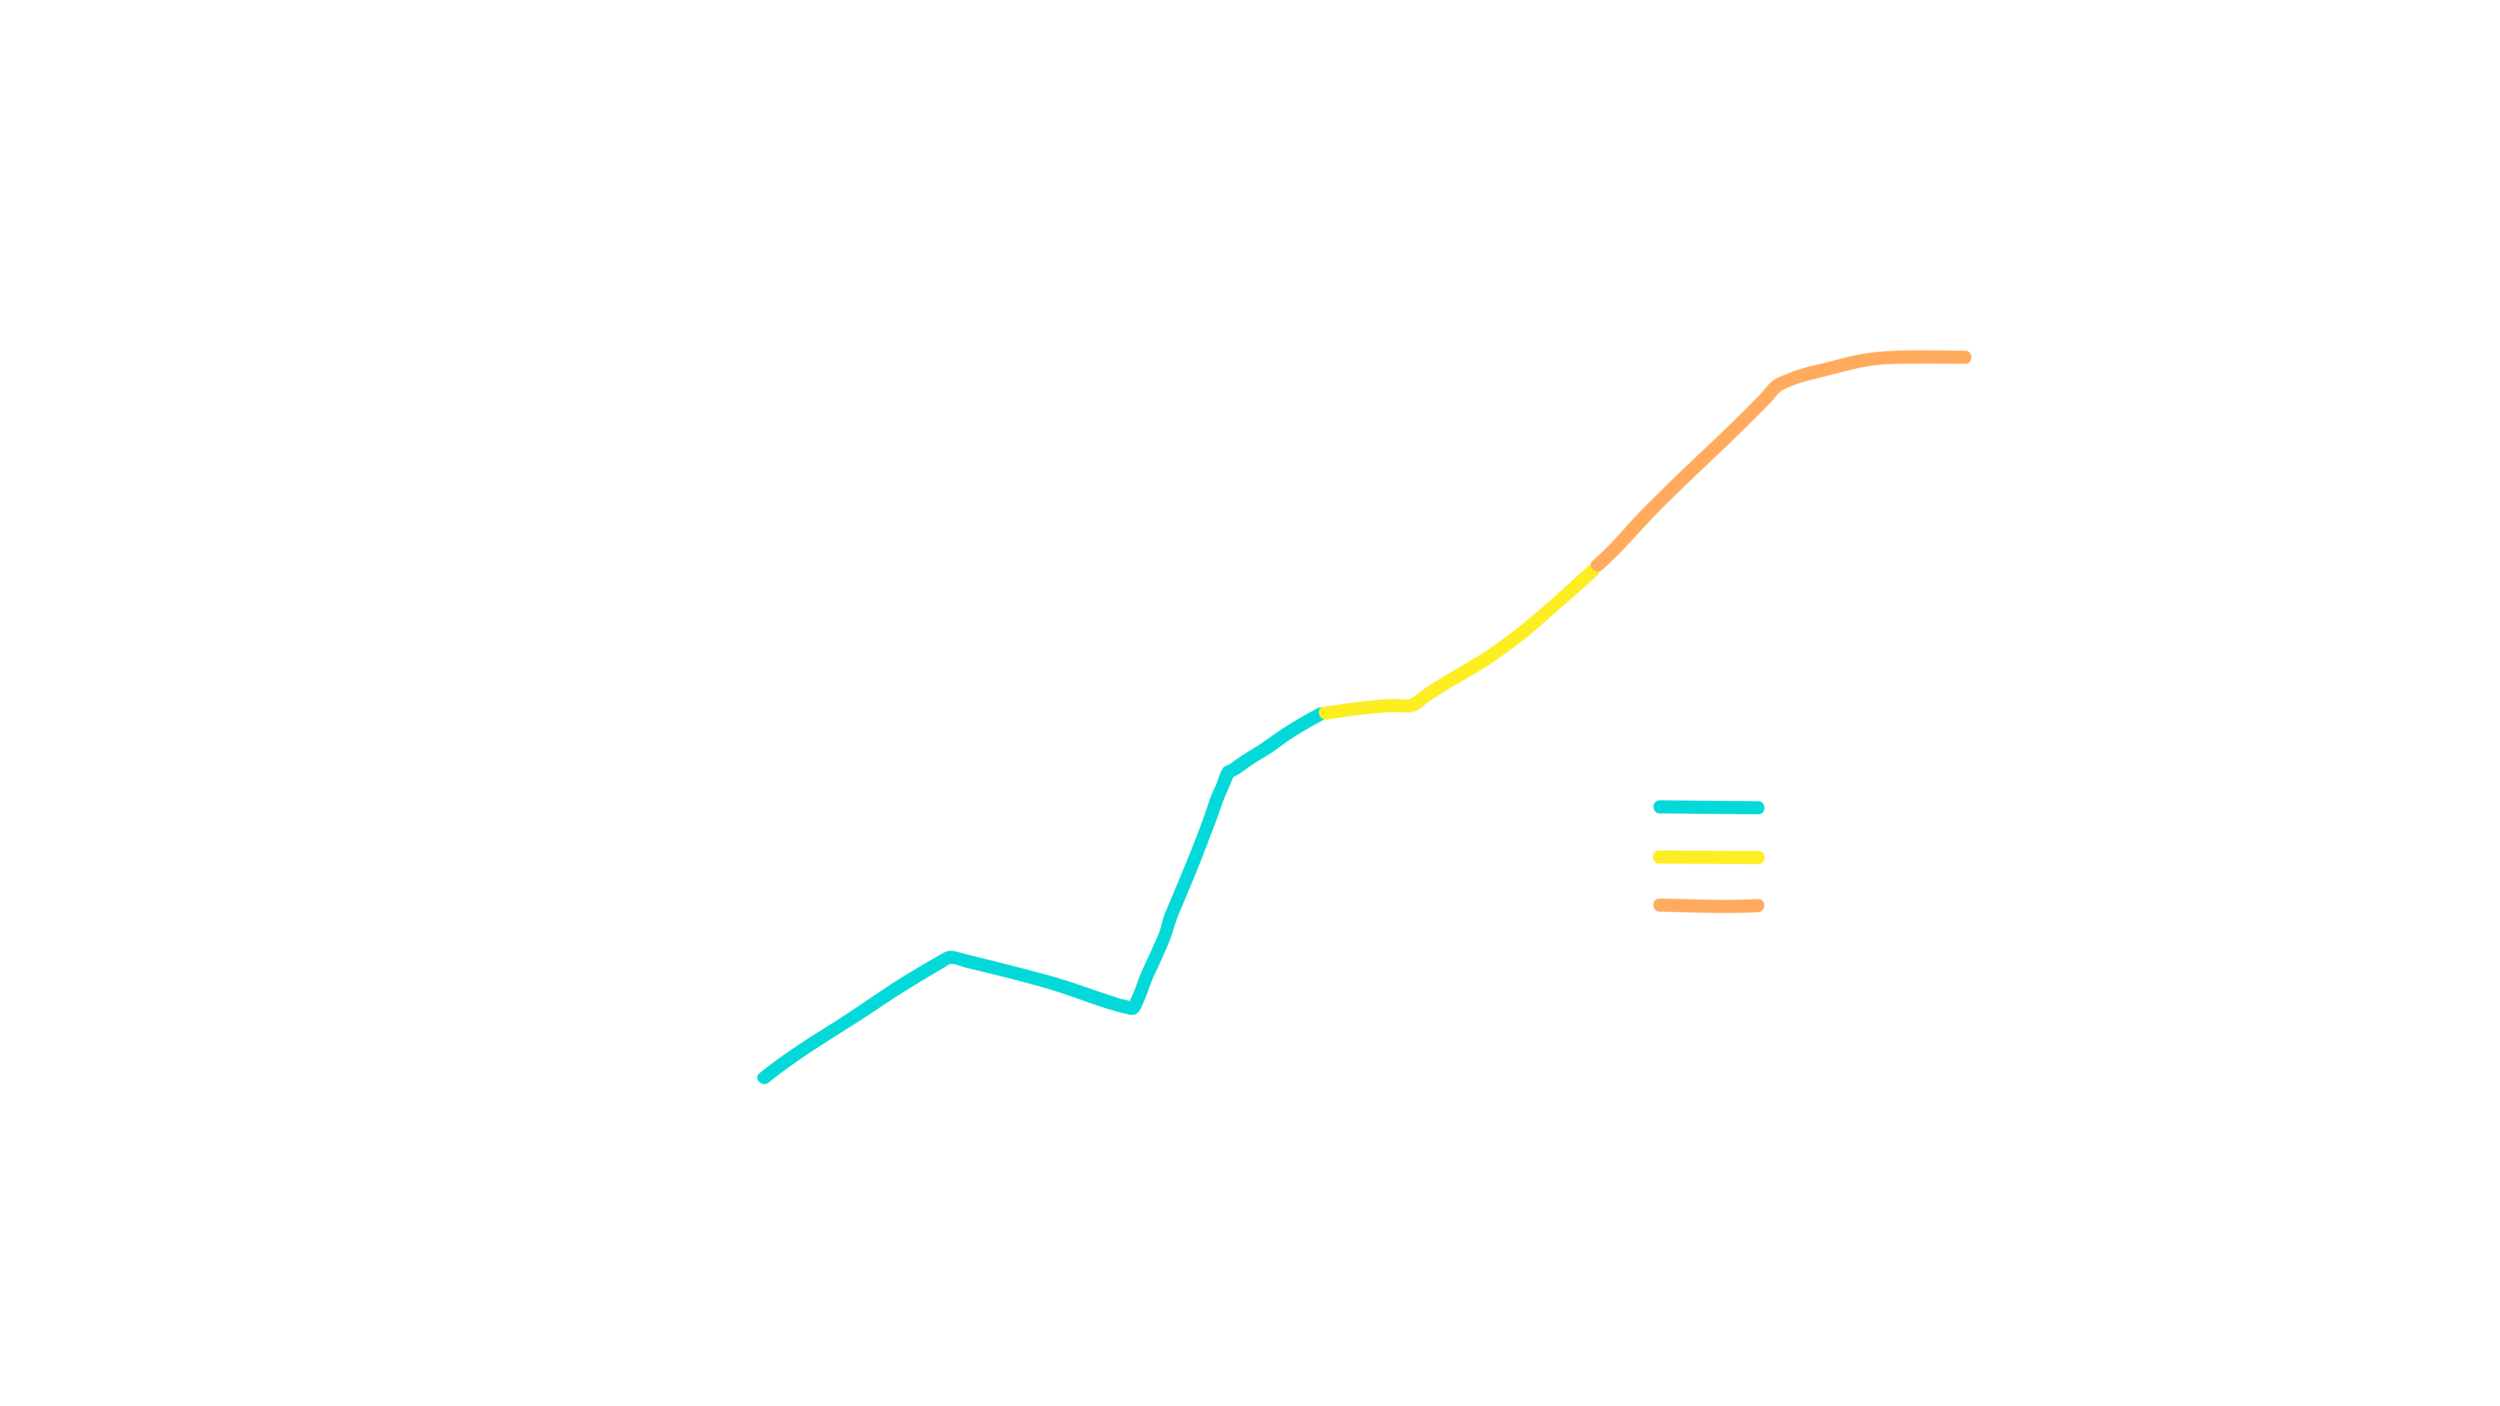 Figure 2: Forecast of number of Small Satellites to be launched over the next few years (Source: NSR, Bryce)